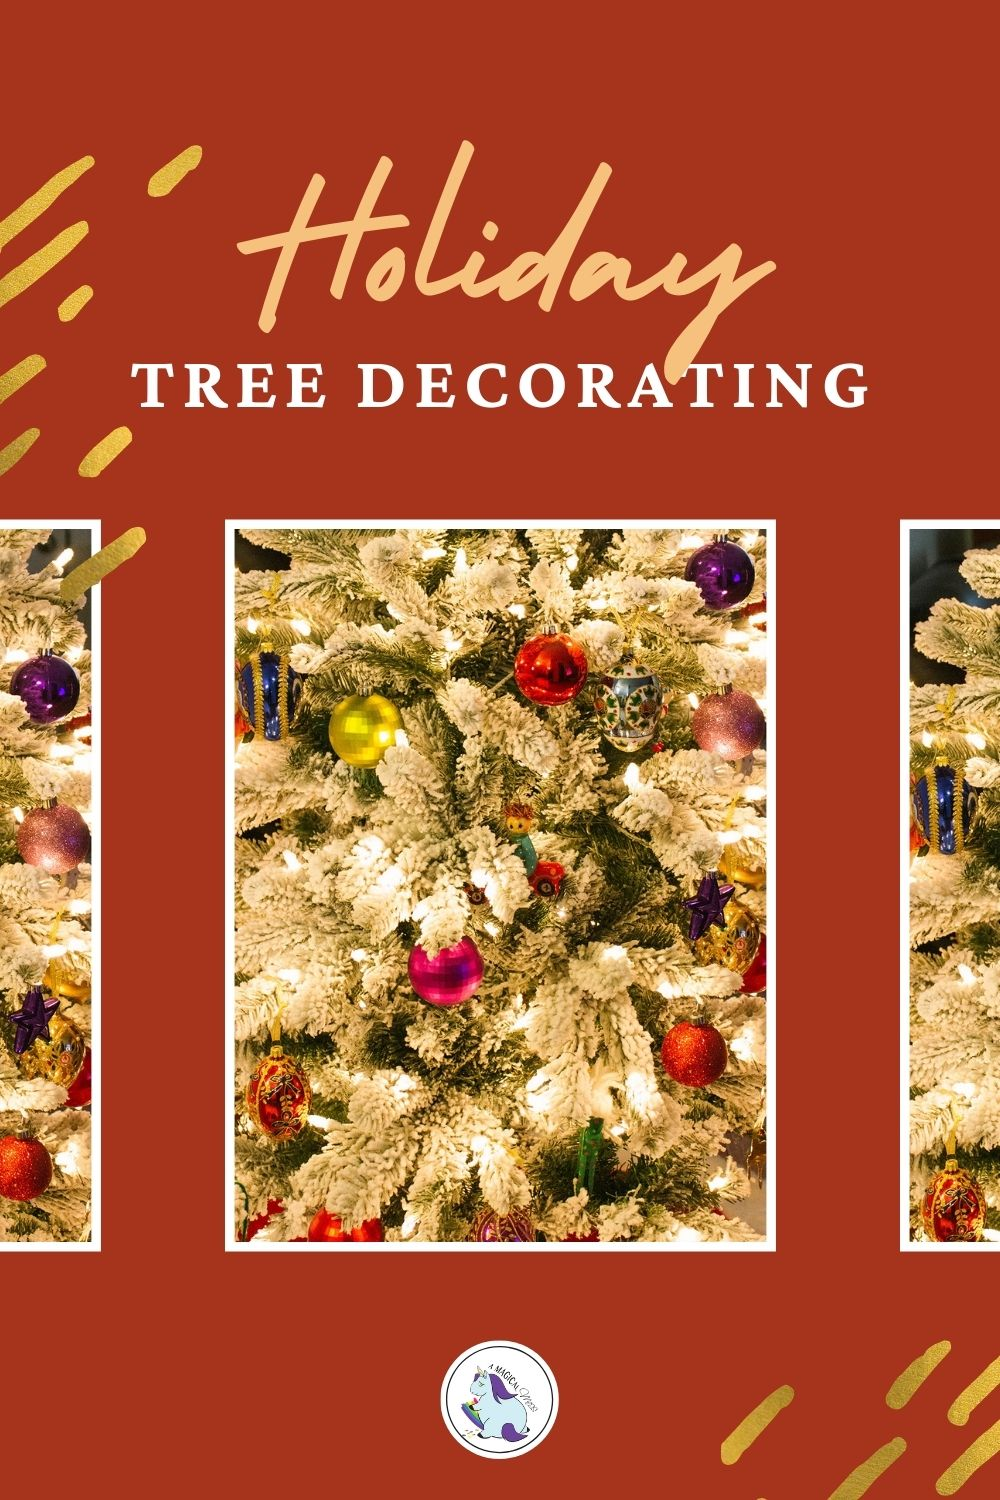 images of a flocked christmas tree with ornaments